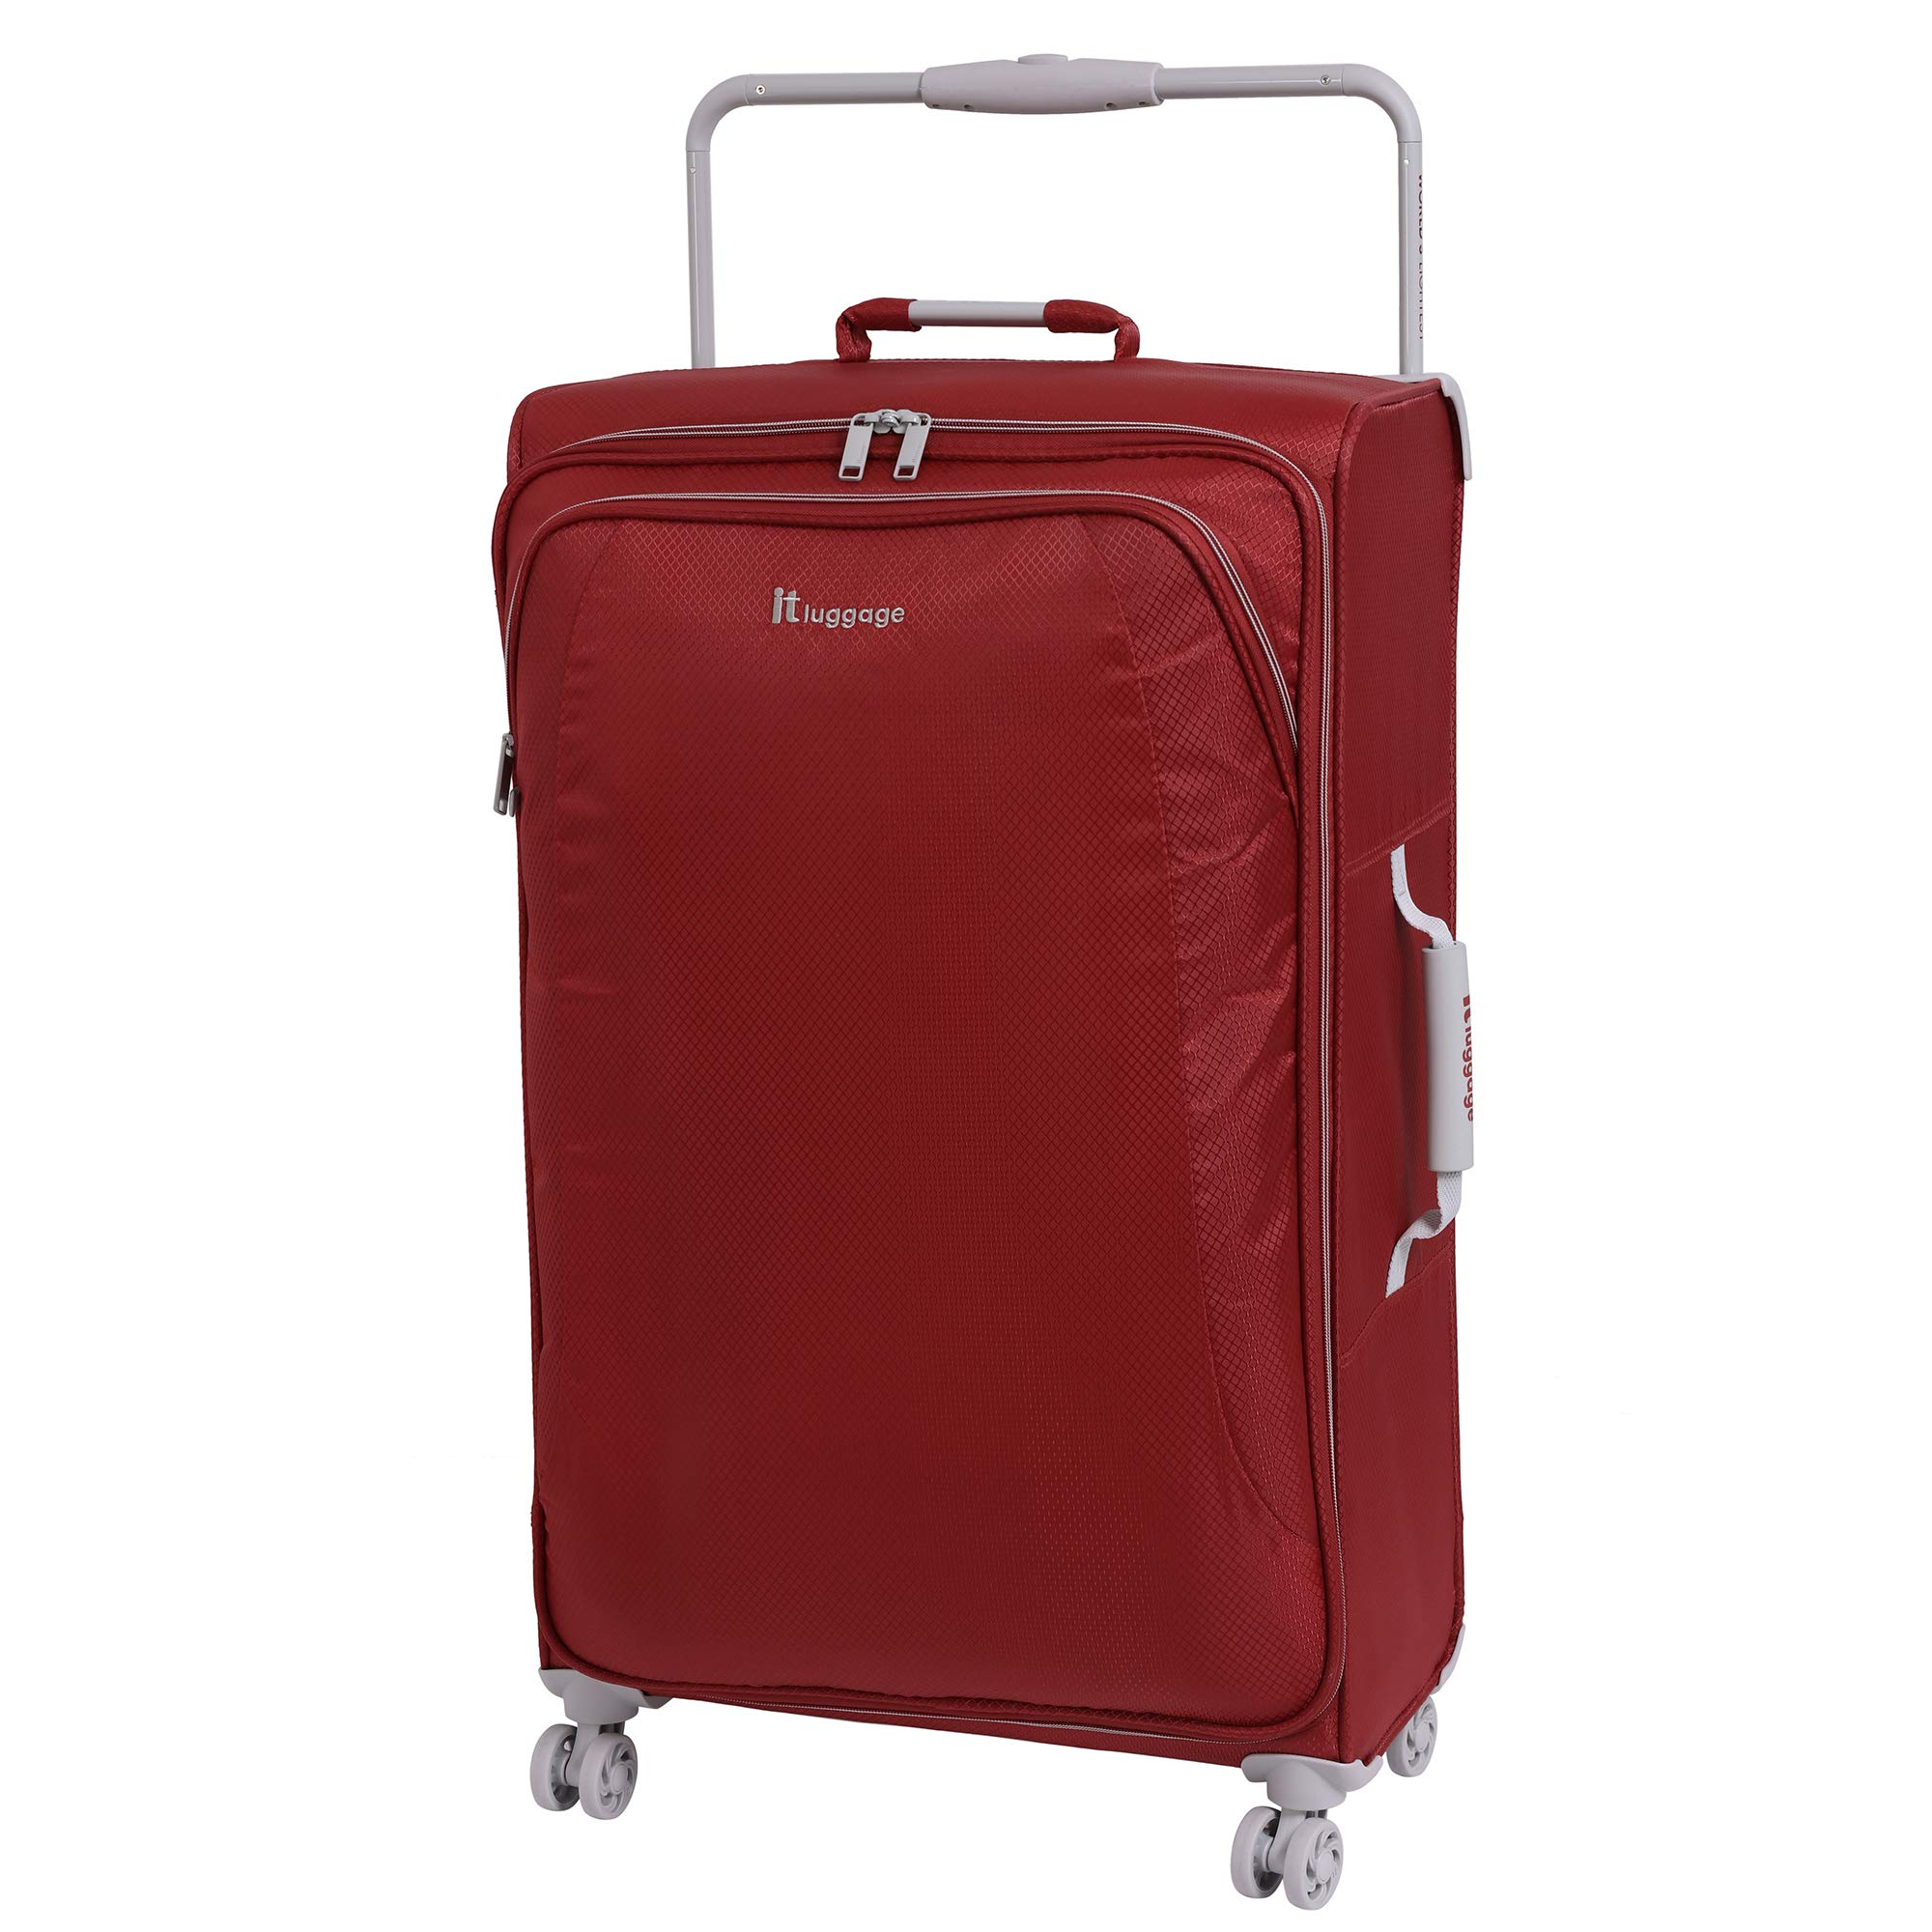 IT Luggage 31.5'' World's Lightest 8 Wheel Spinner, Bossa Nova With Vapor Blue Trim